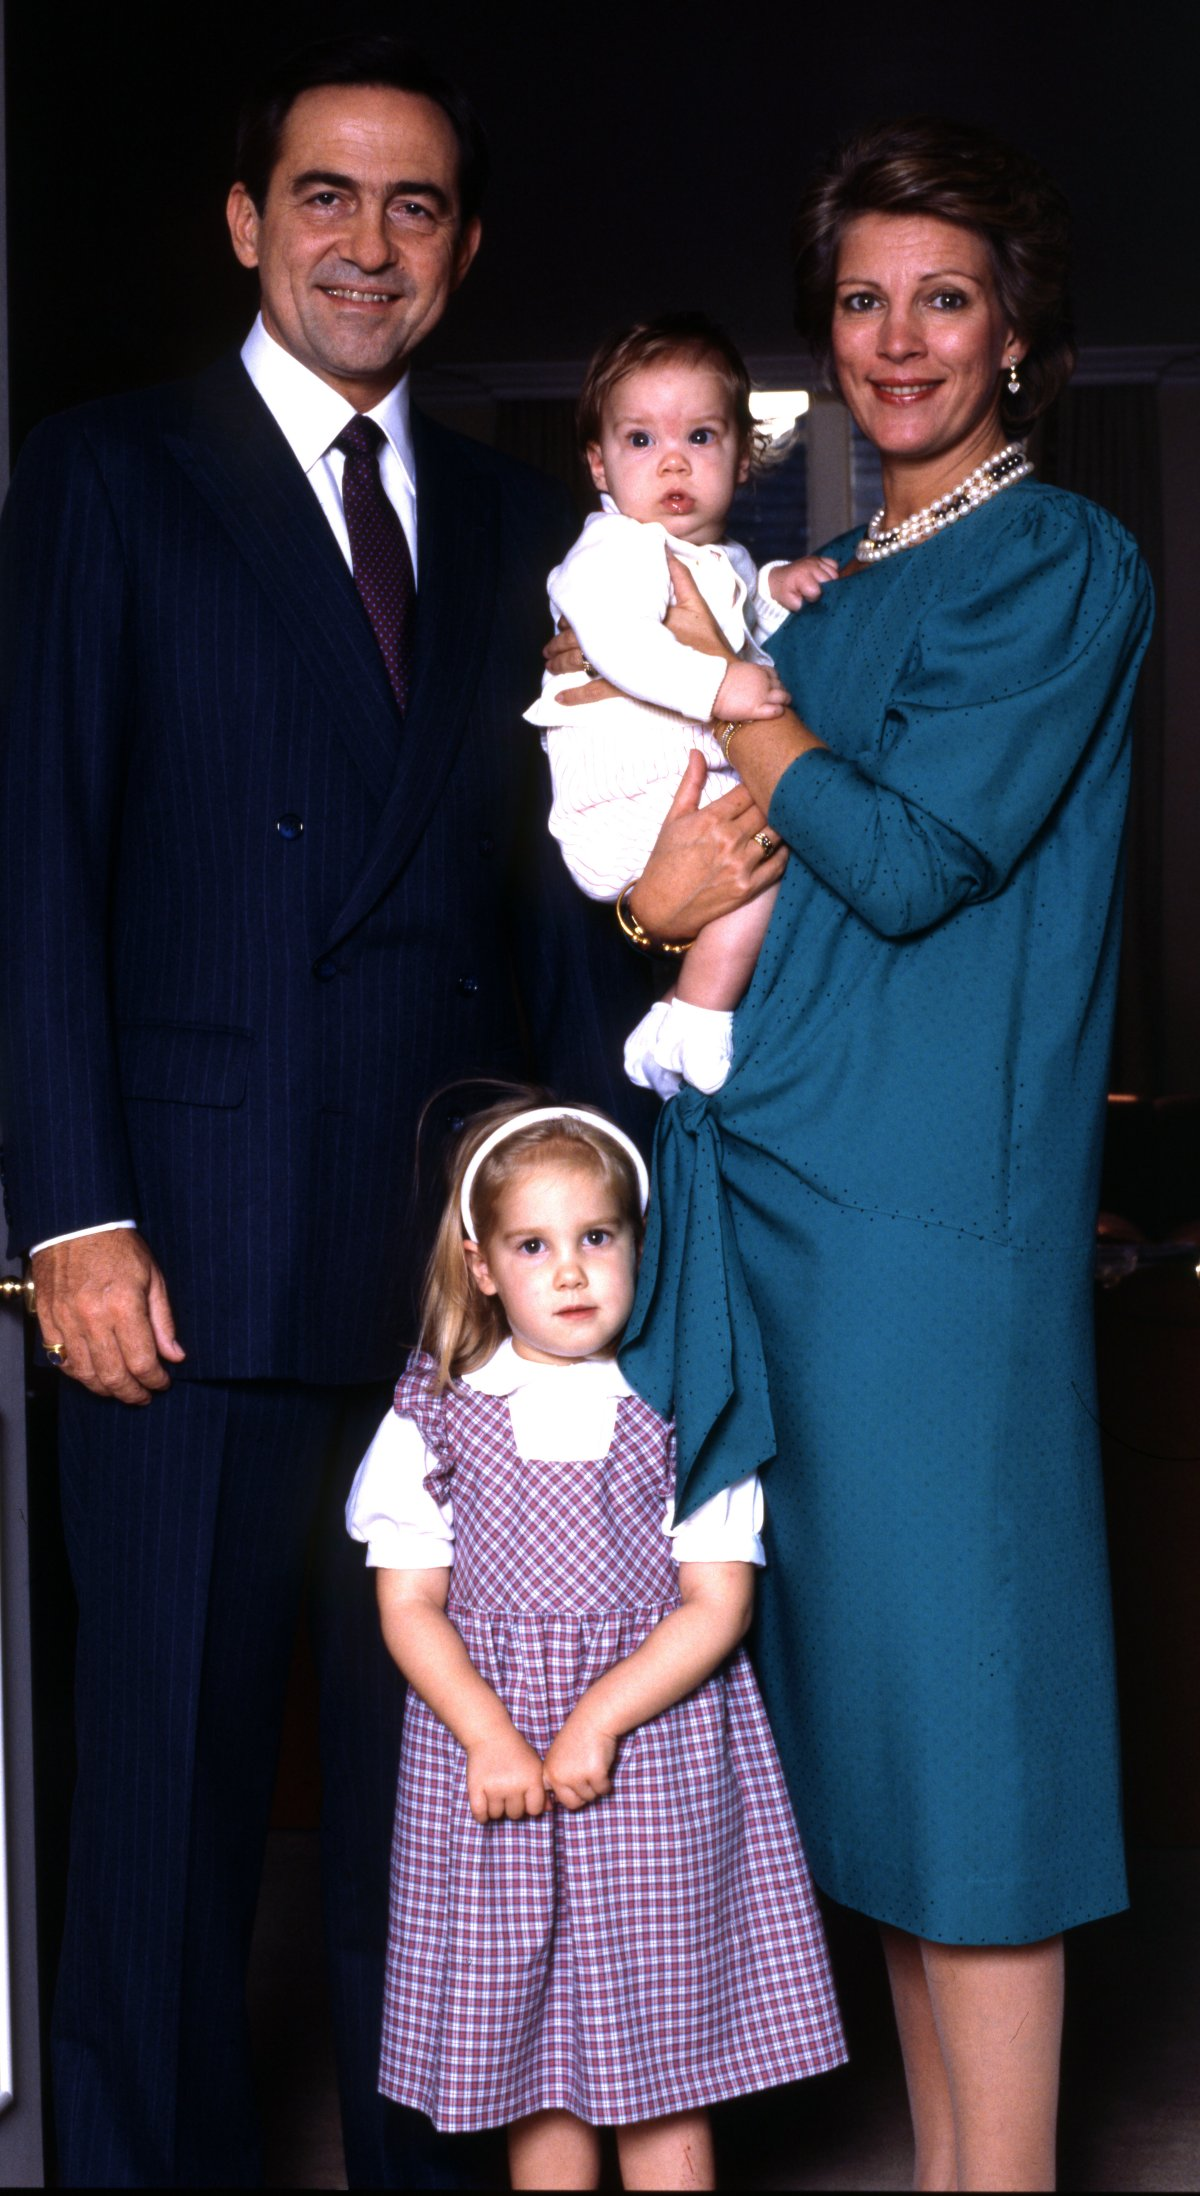 Former King Constantine & Queen Anne-Marie of Greece with two of their children Theodora & Phillippos, 1986